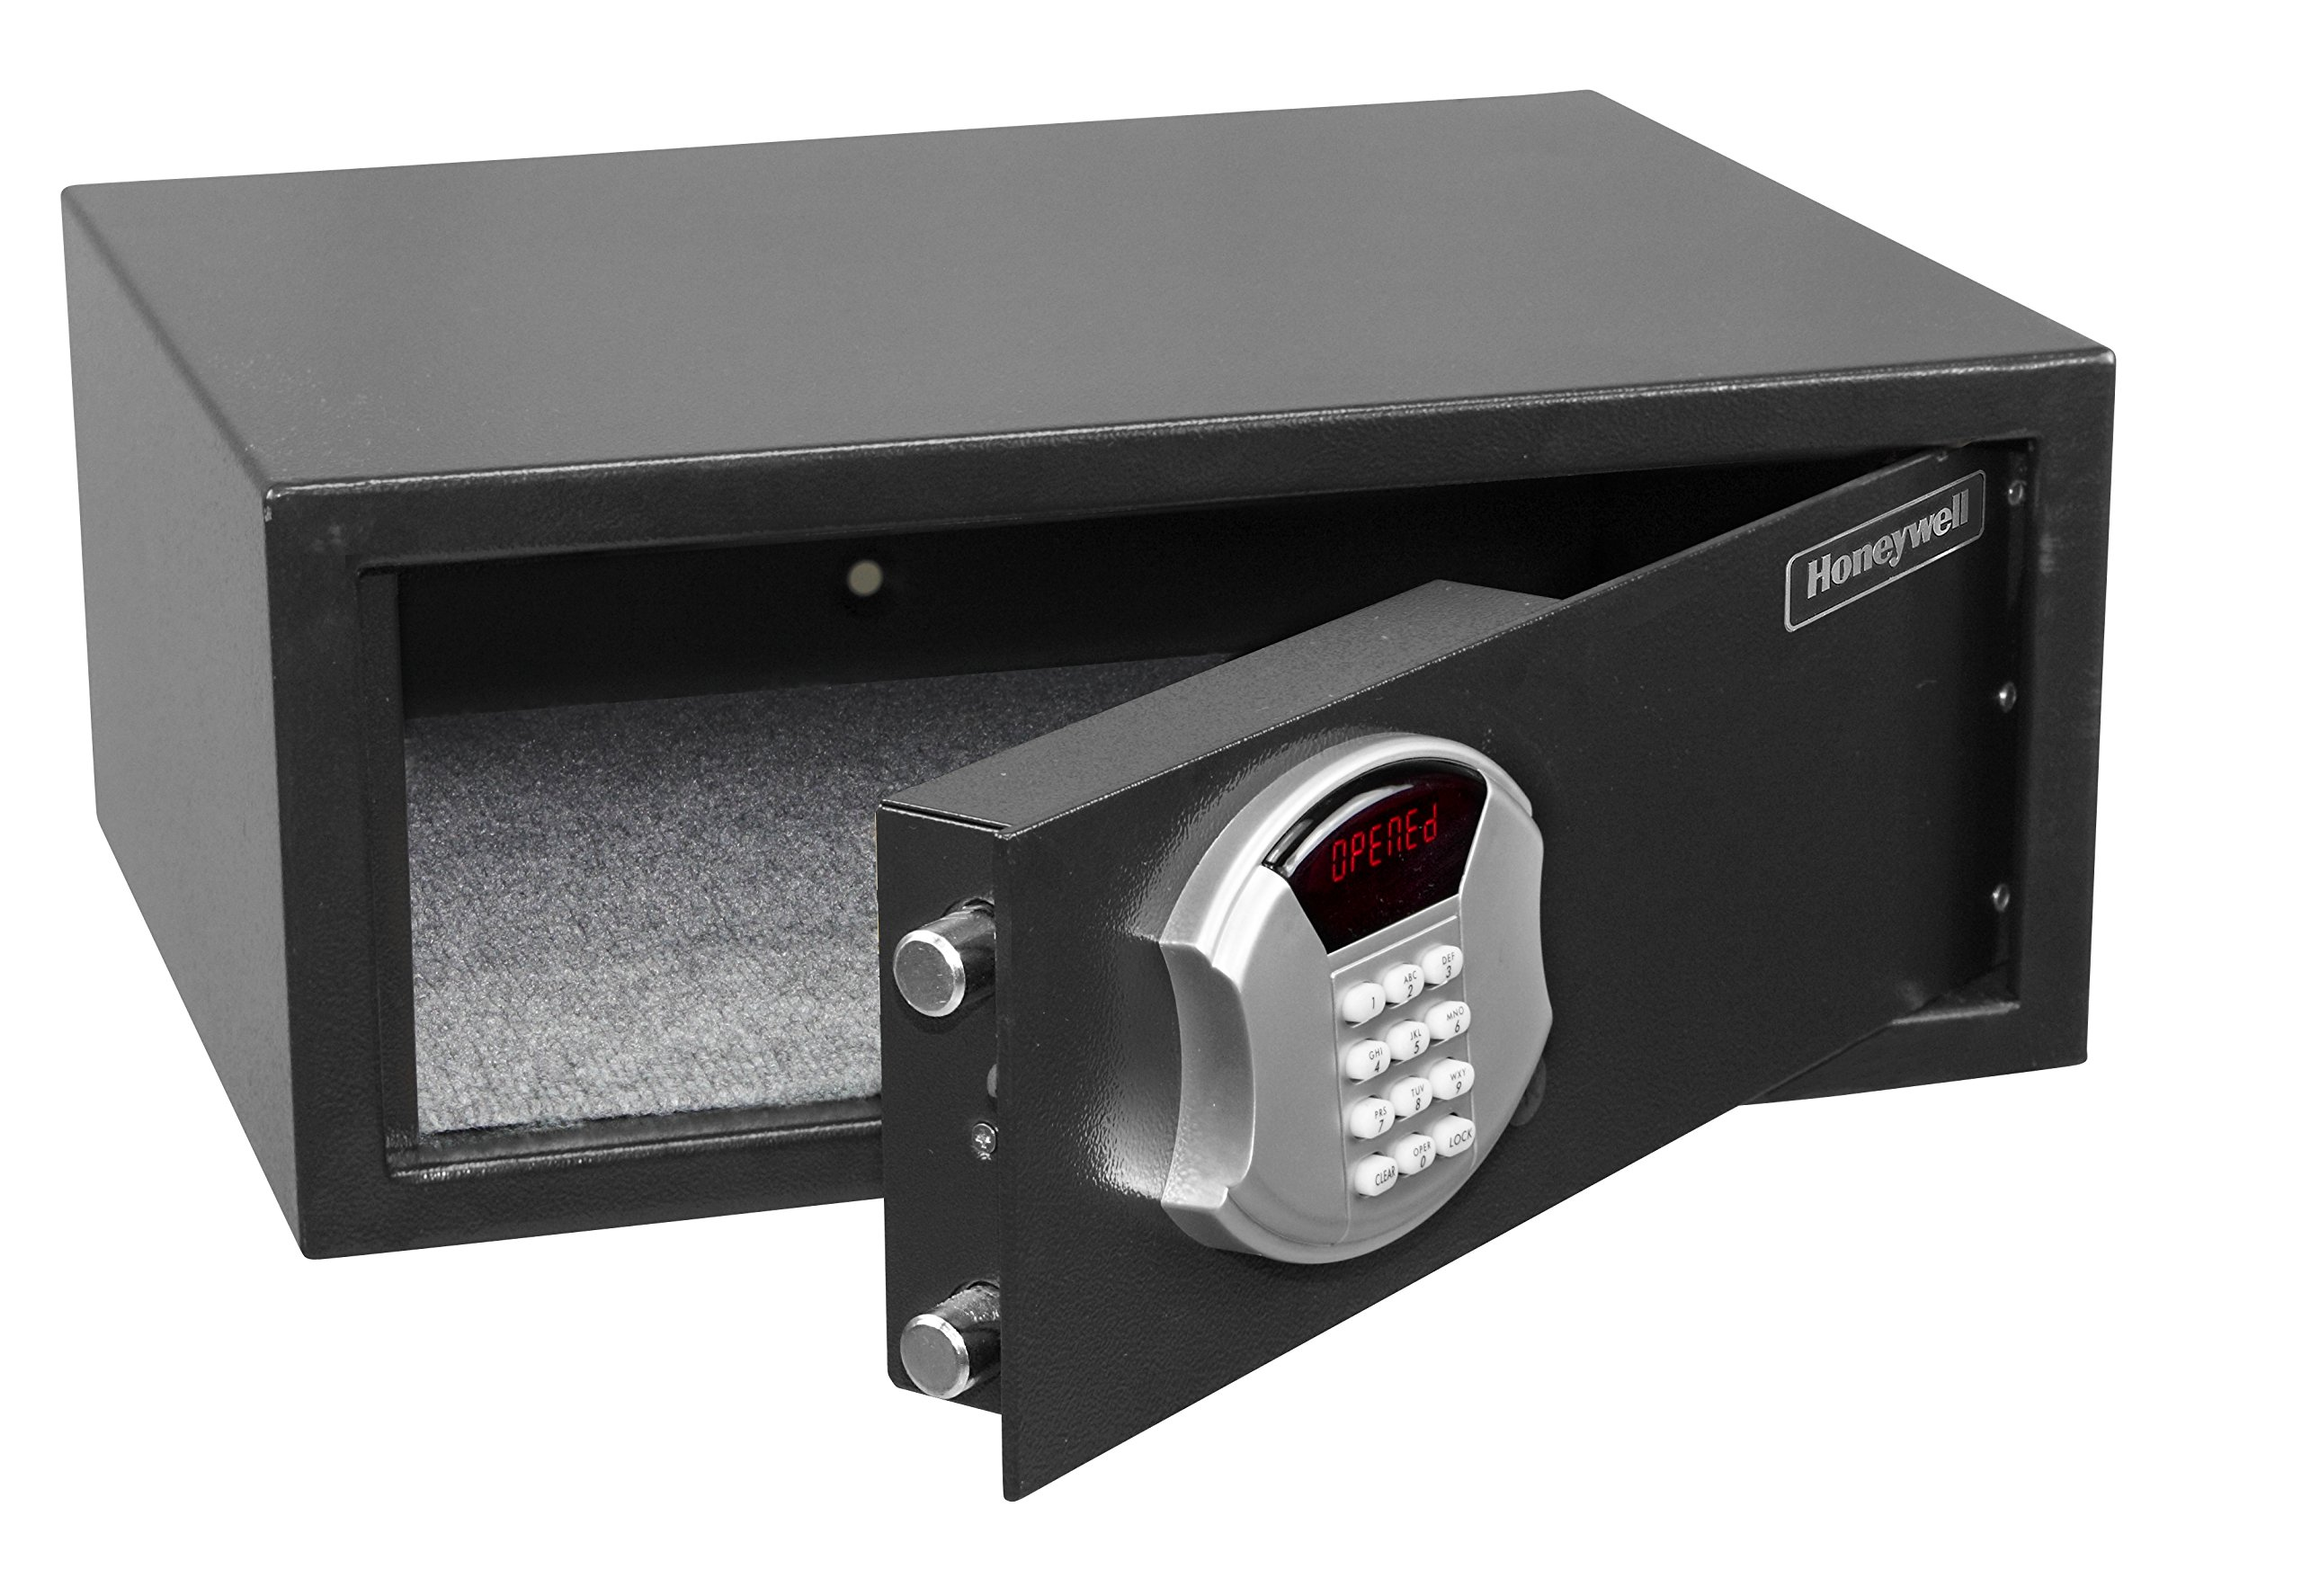 Honeywell 5105DS Low Profile Steel Security Safe with Hotel-Style Digital Lock, 1.10-Cubic Feet, Black by Honeywell Safes & Door Locks (Image #7)